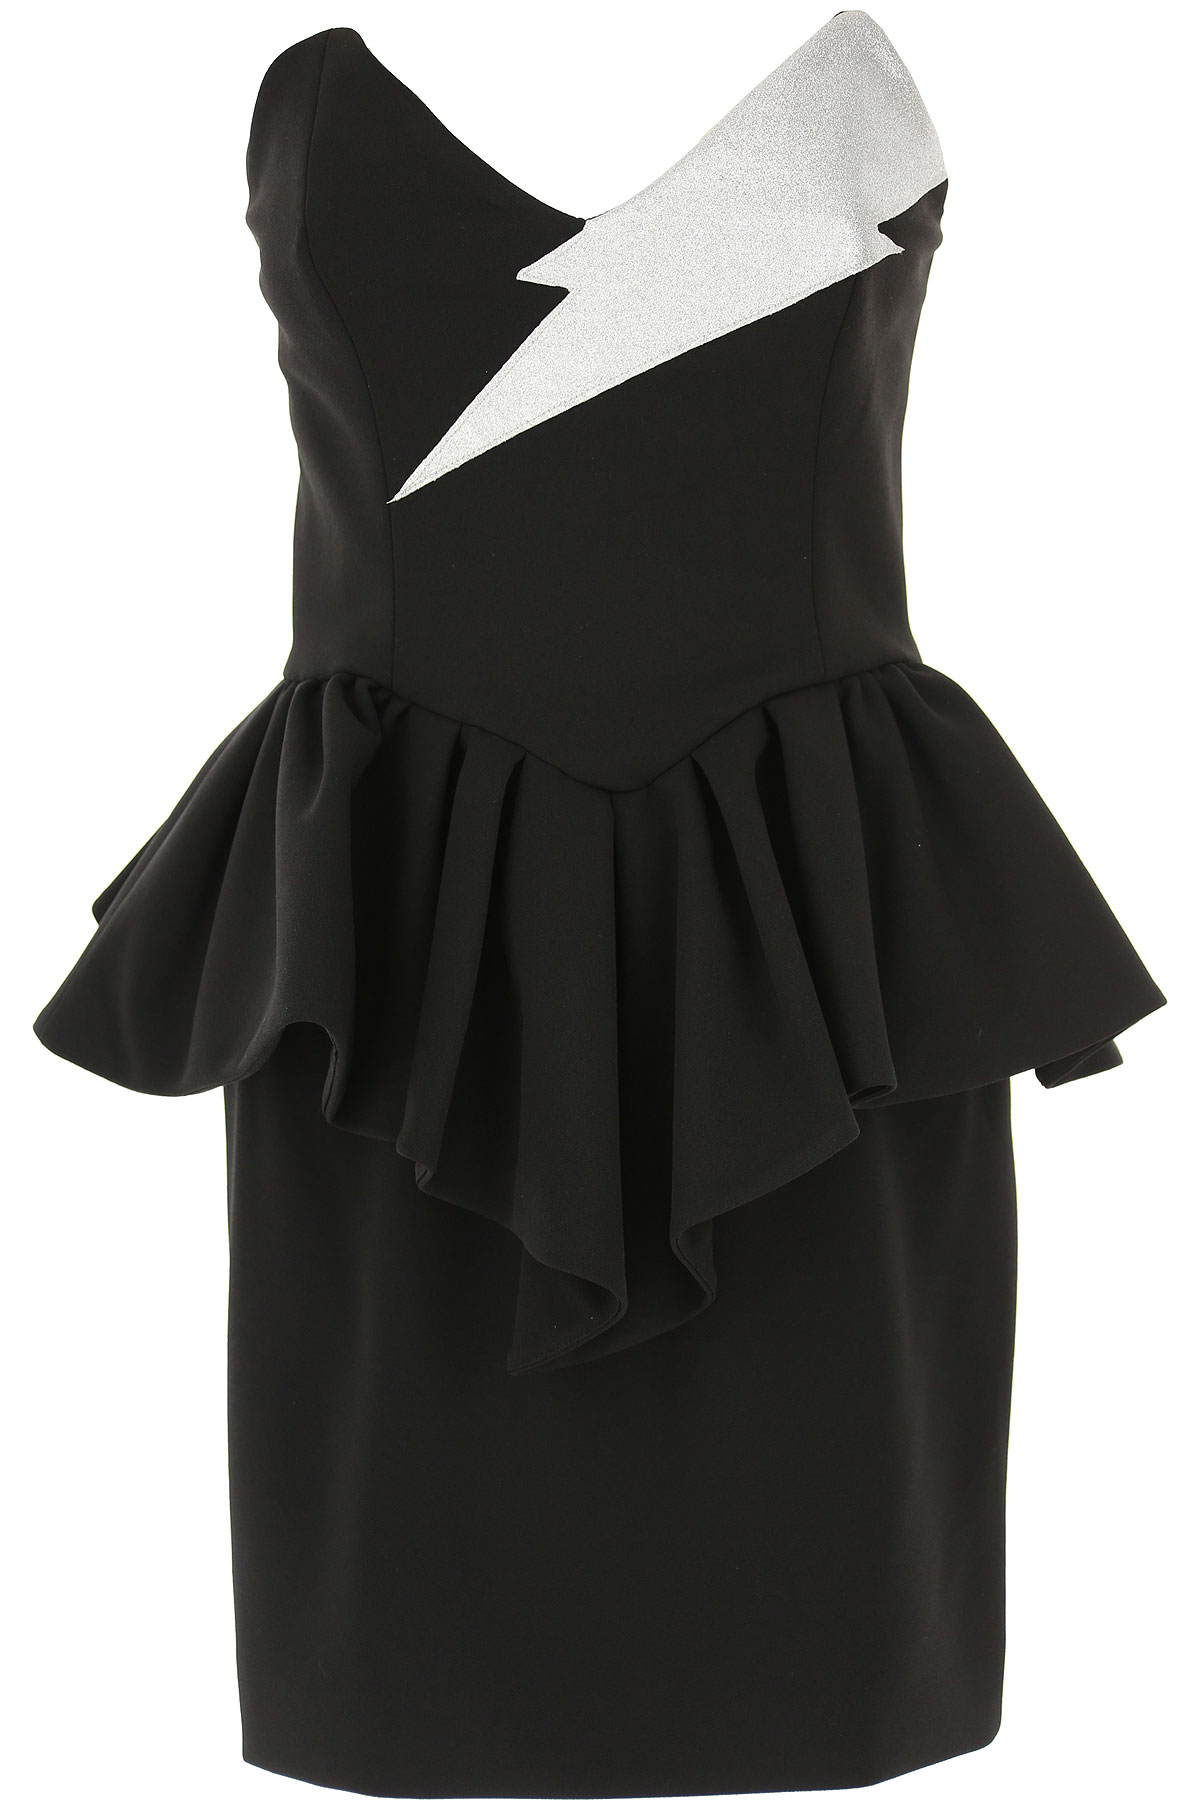 Aniye By Dress for Women, Evening Cocktail Party On Sale, Black, polyester, 2019, 4 6